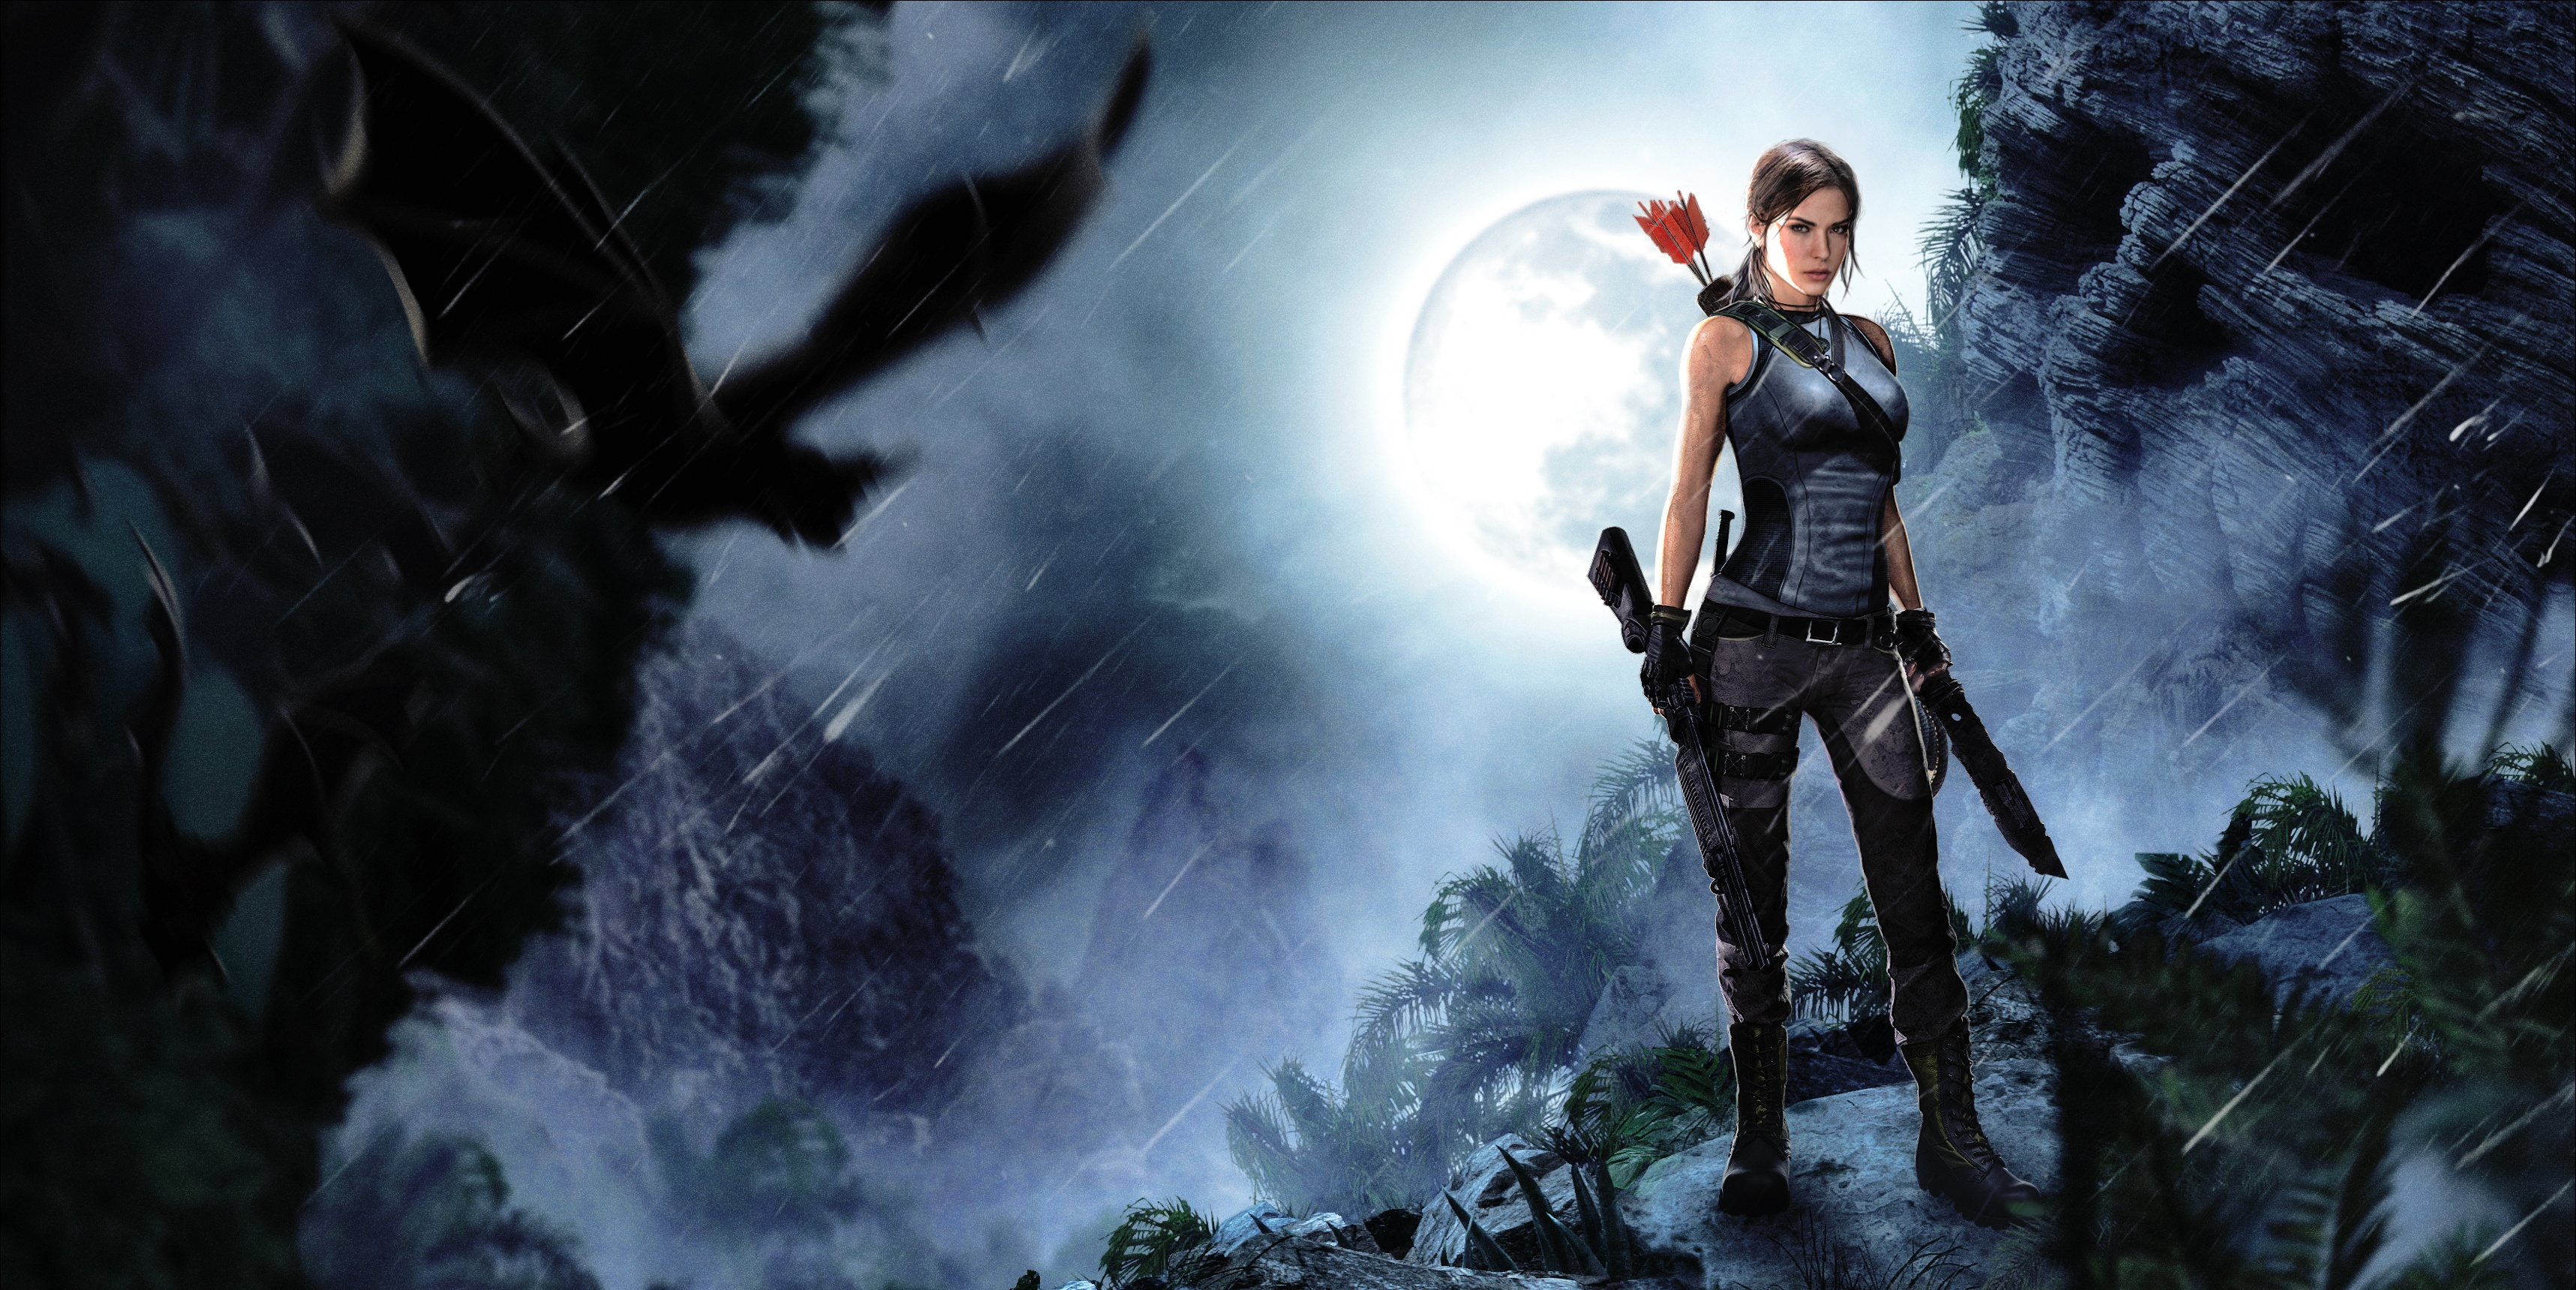 Tomb Raider 2013 Hd Wallpaper Background Image 3433x1719 Id 920915 Wallpaper Abyss